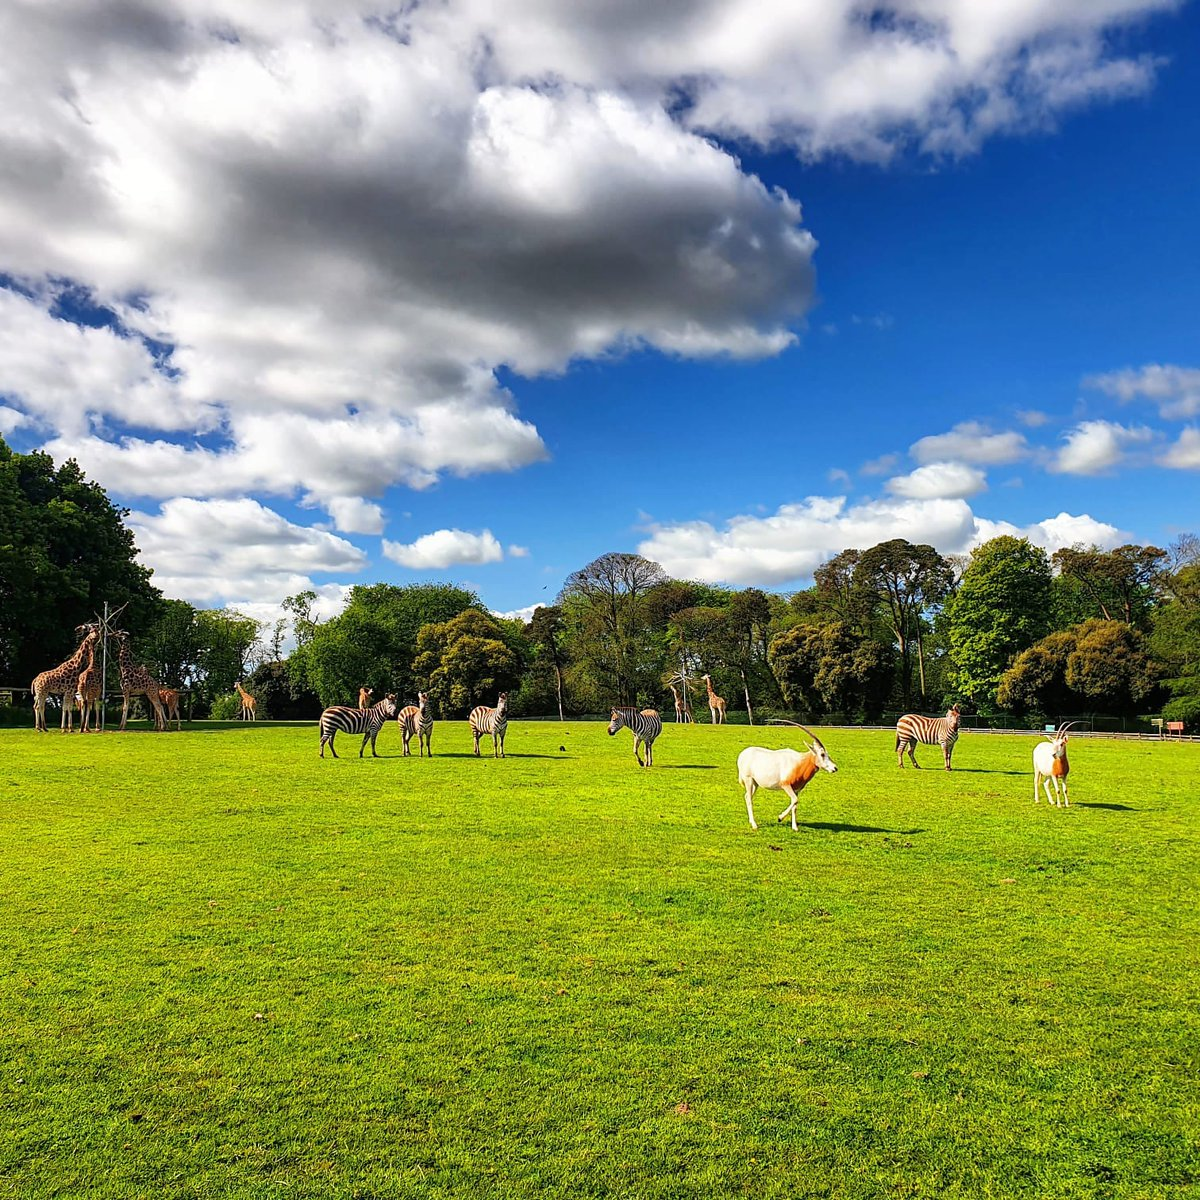 Those blue skies! Thanks to our ranger Liam for this brilliant photo showing the #Giraffe, #zebra and Scimitar-horned #oryx together in the park. https://t.co/twilpgojQV